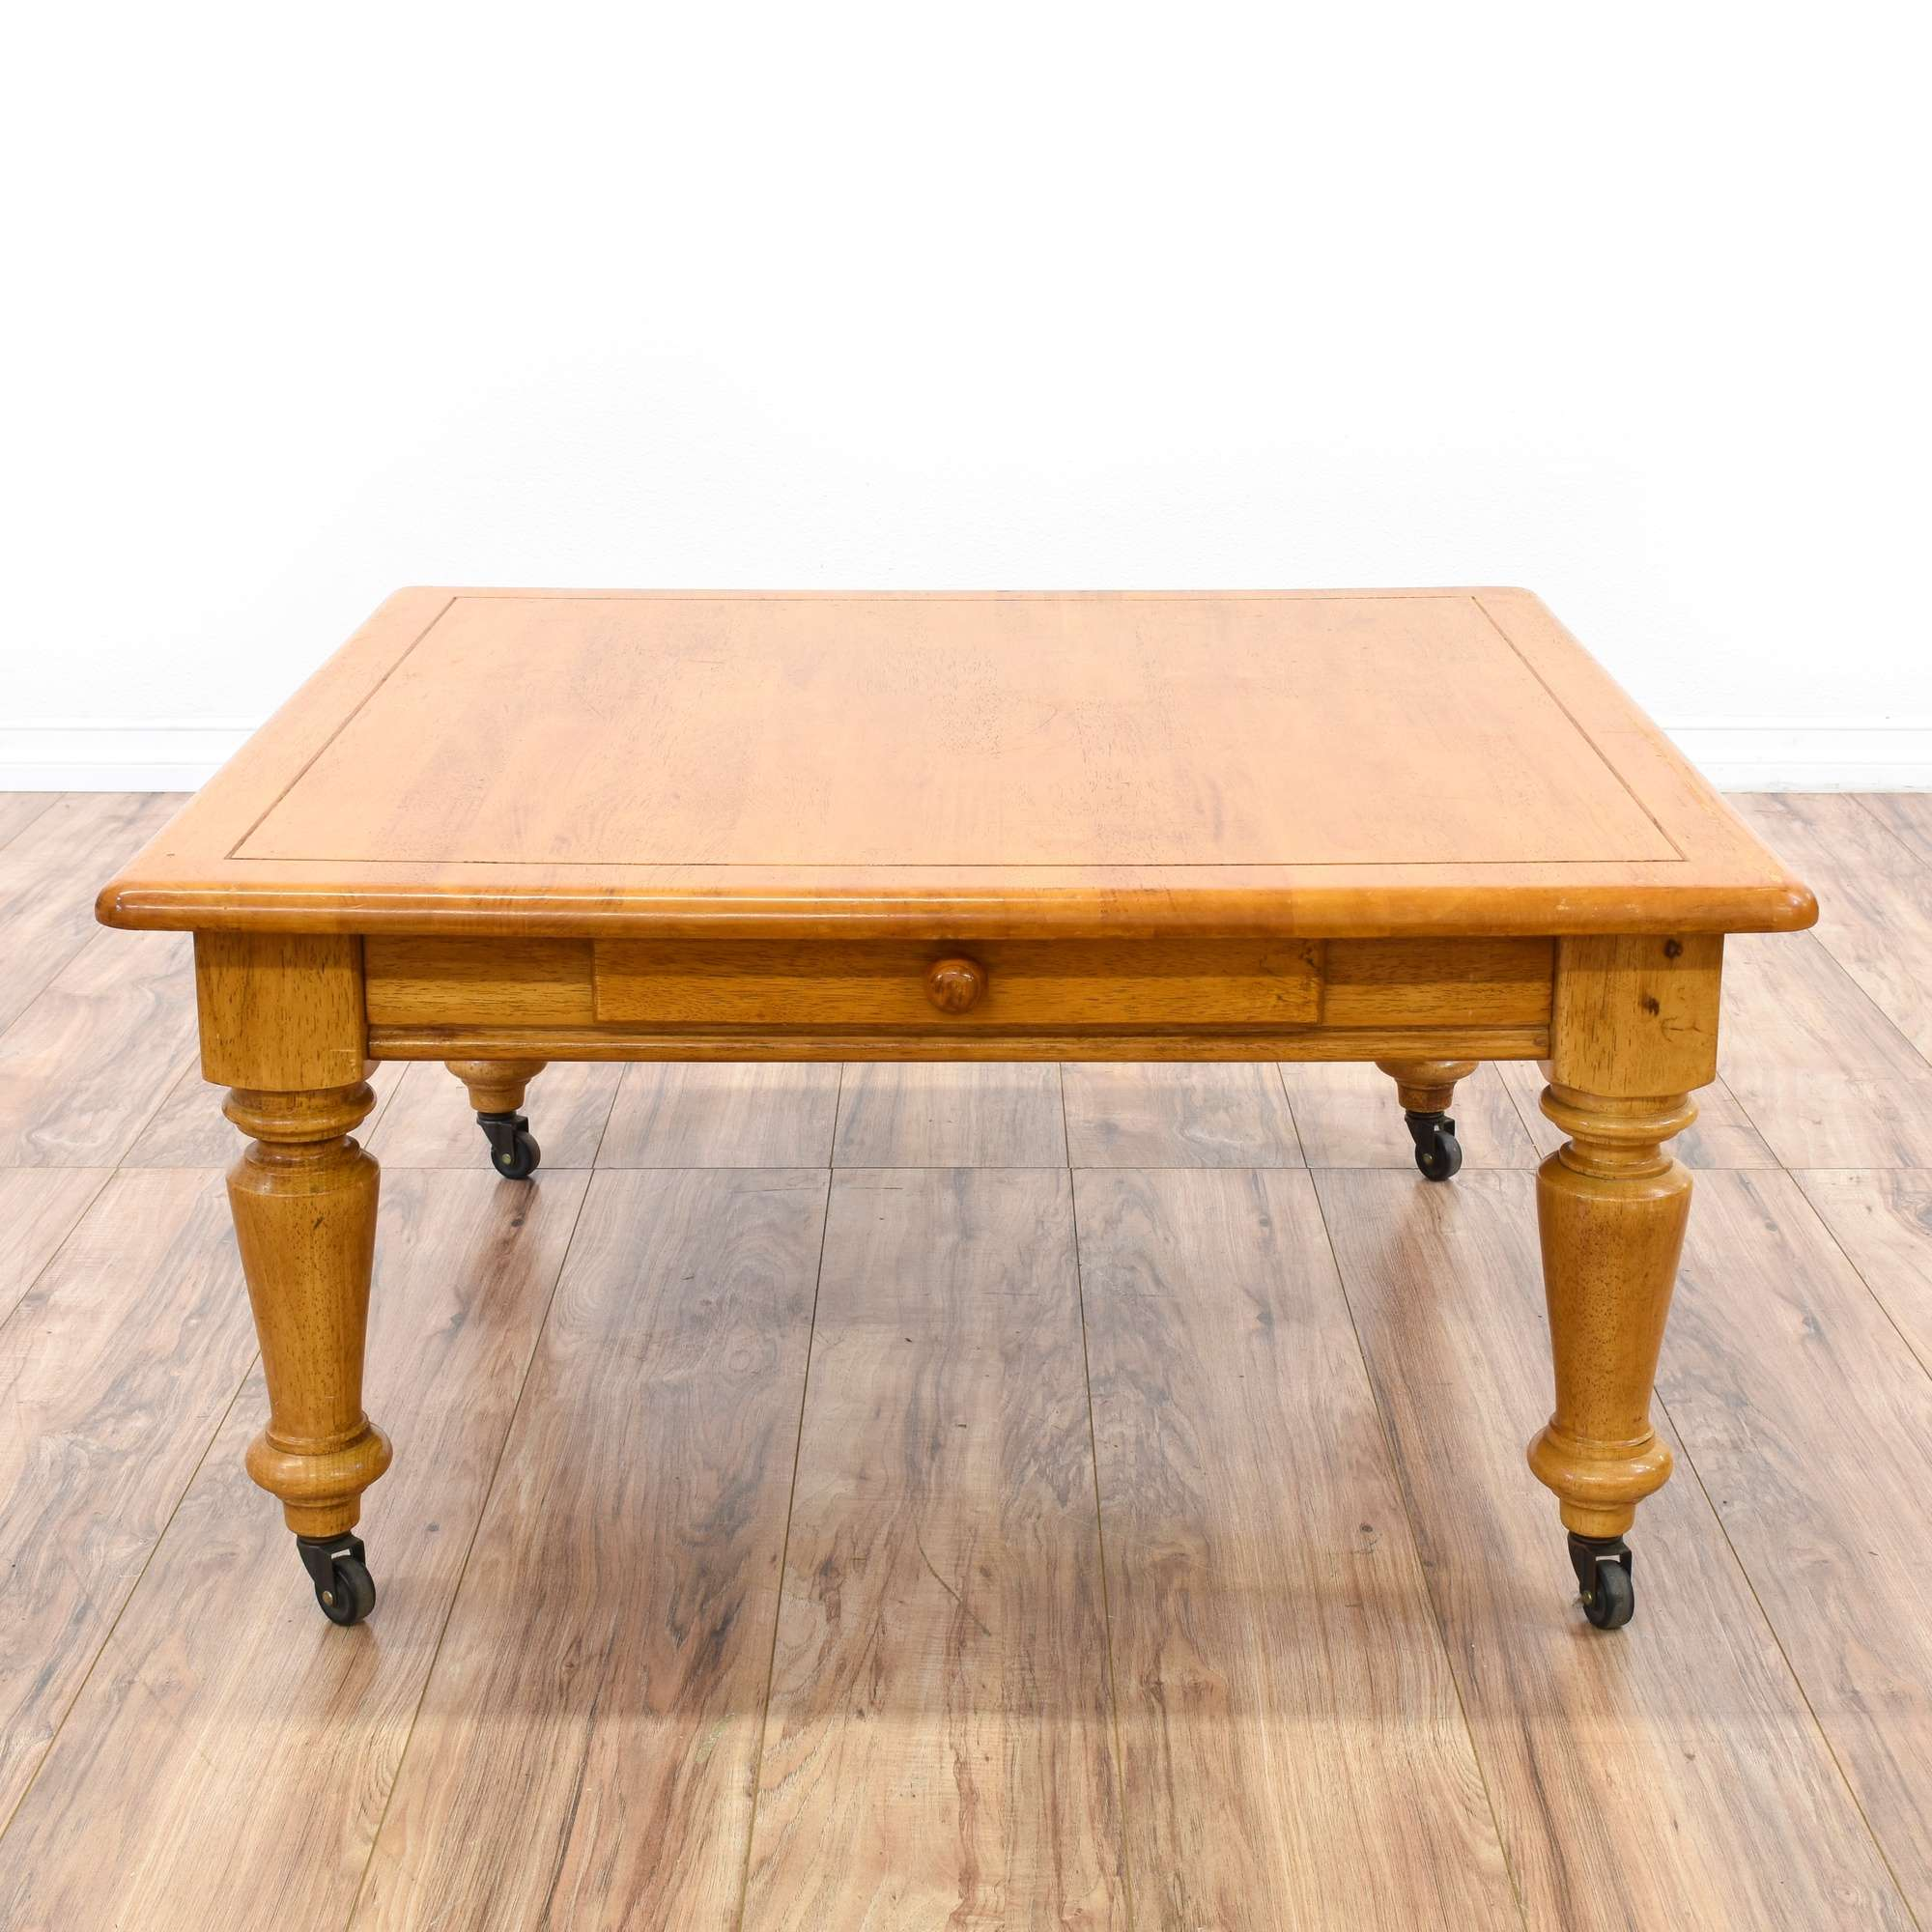 Square Country Chic Coffee Table on Casters